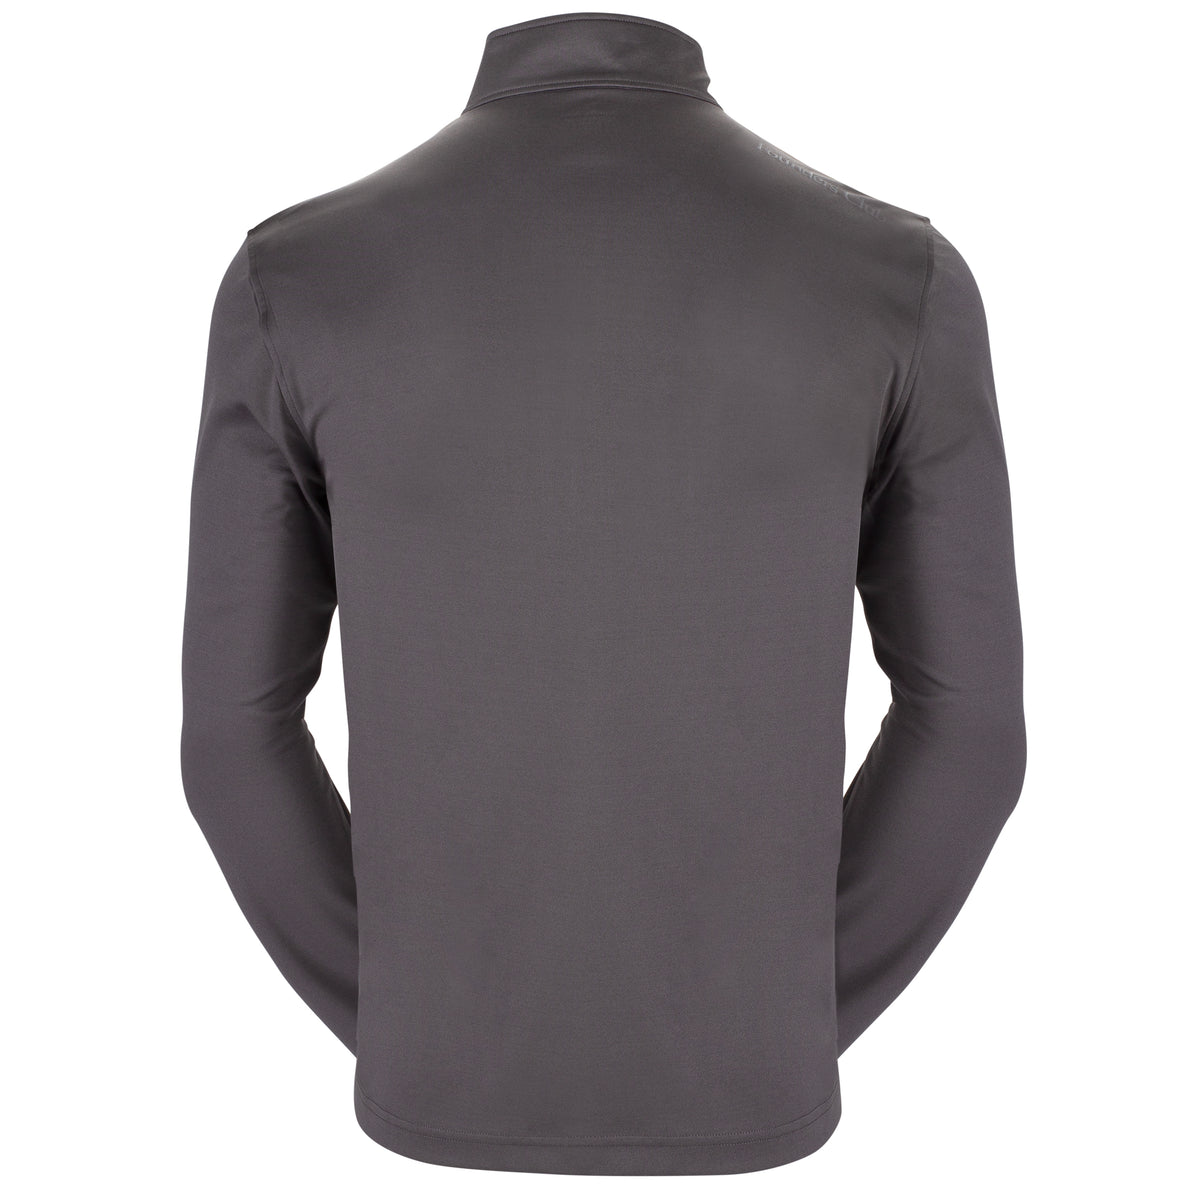 Founders Club Performance Men's Long Sleeve Lightweight Breathable Thermal Half Zip Baselayer Shirt Top Golf Hiking Skiing Gray